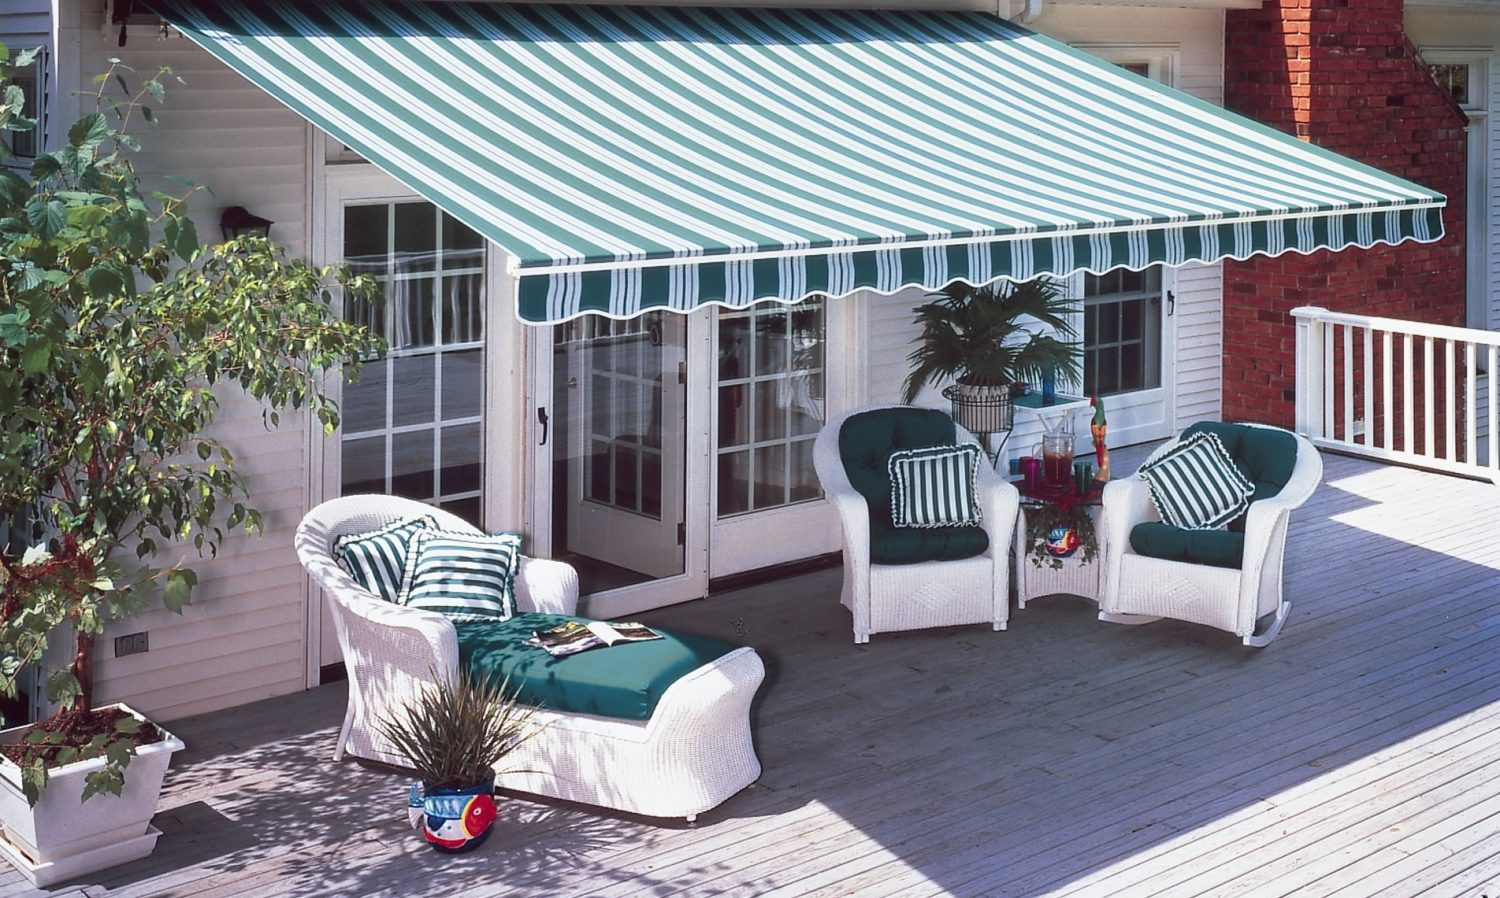 Retractable Awning Products From The Awning Warehouse